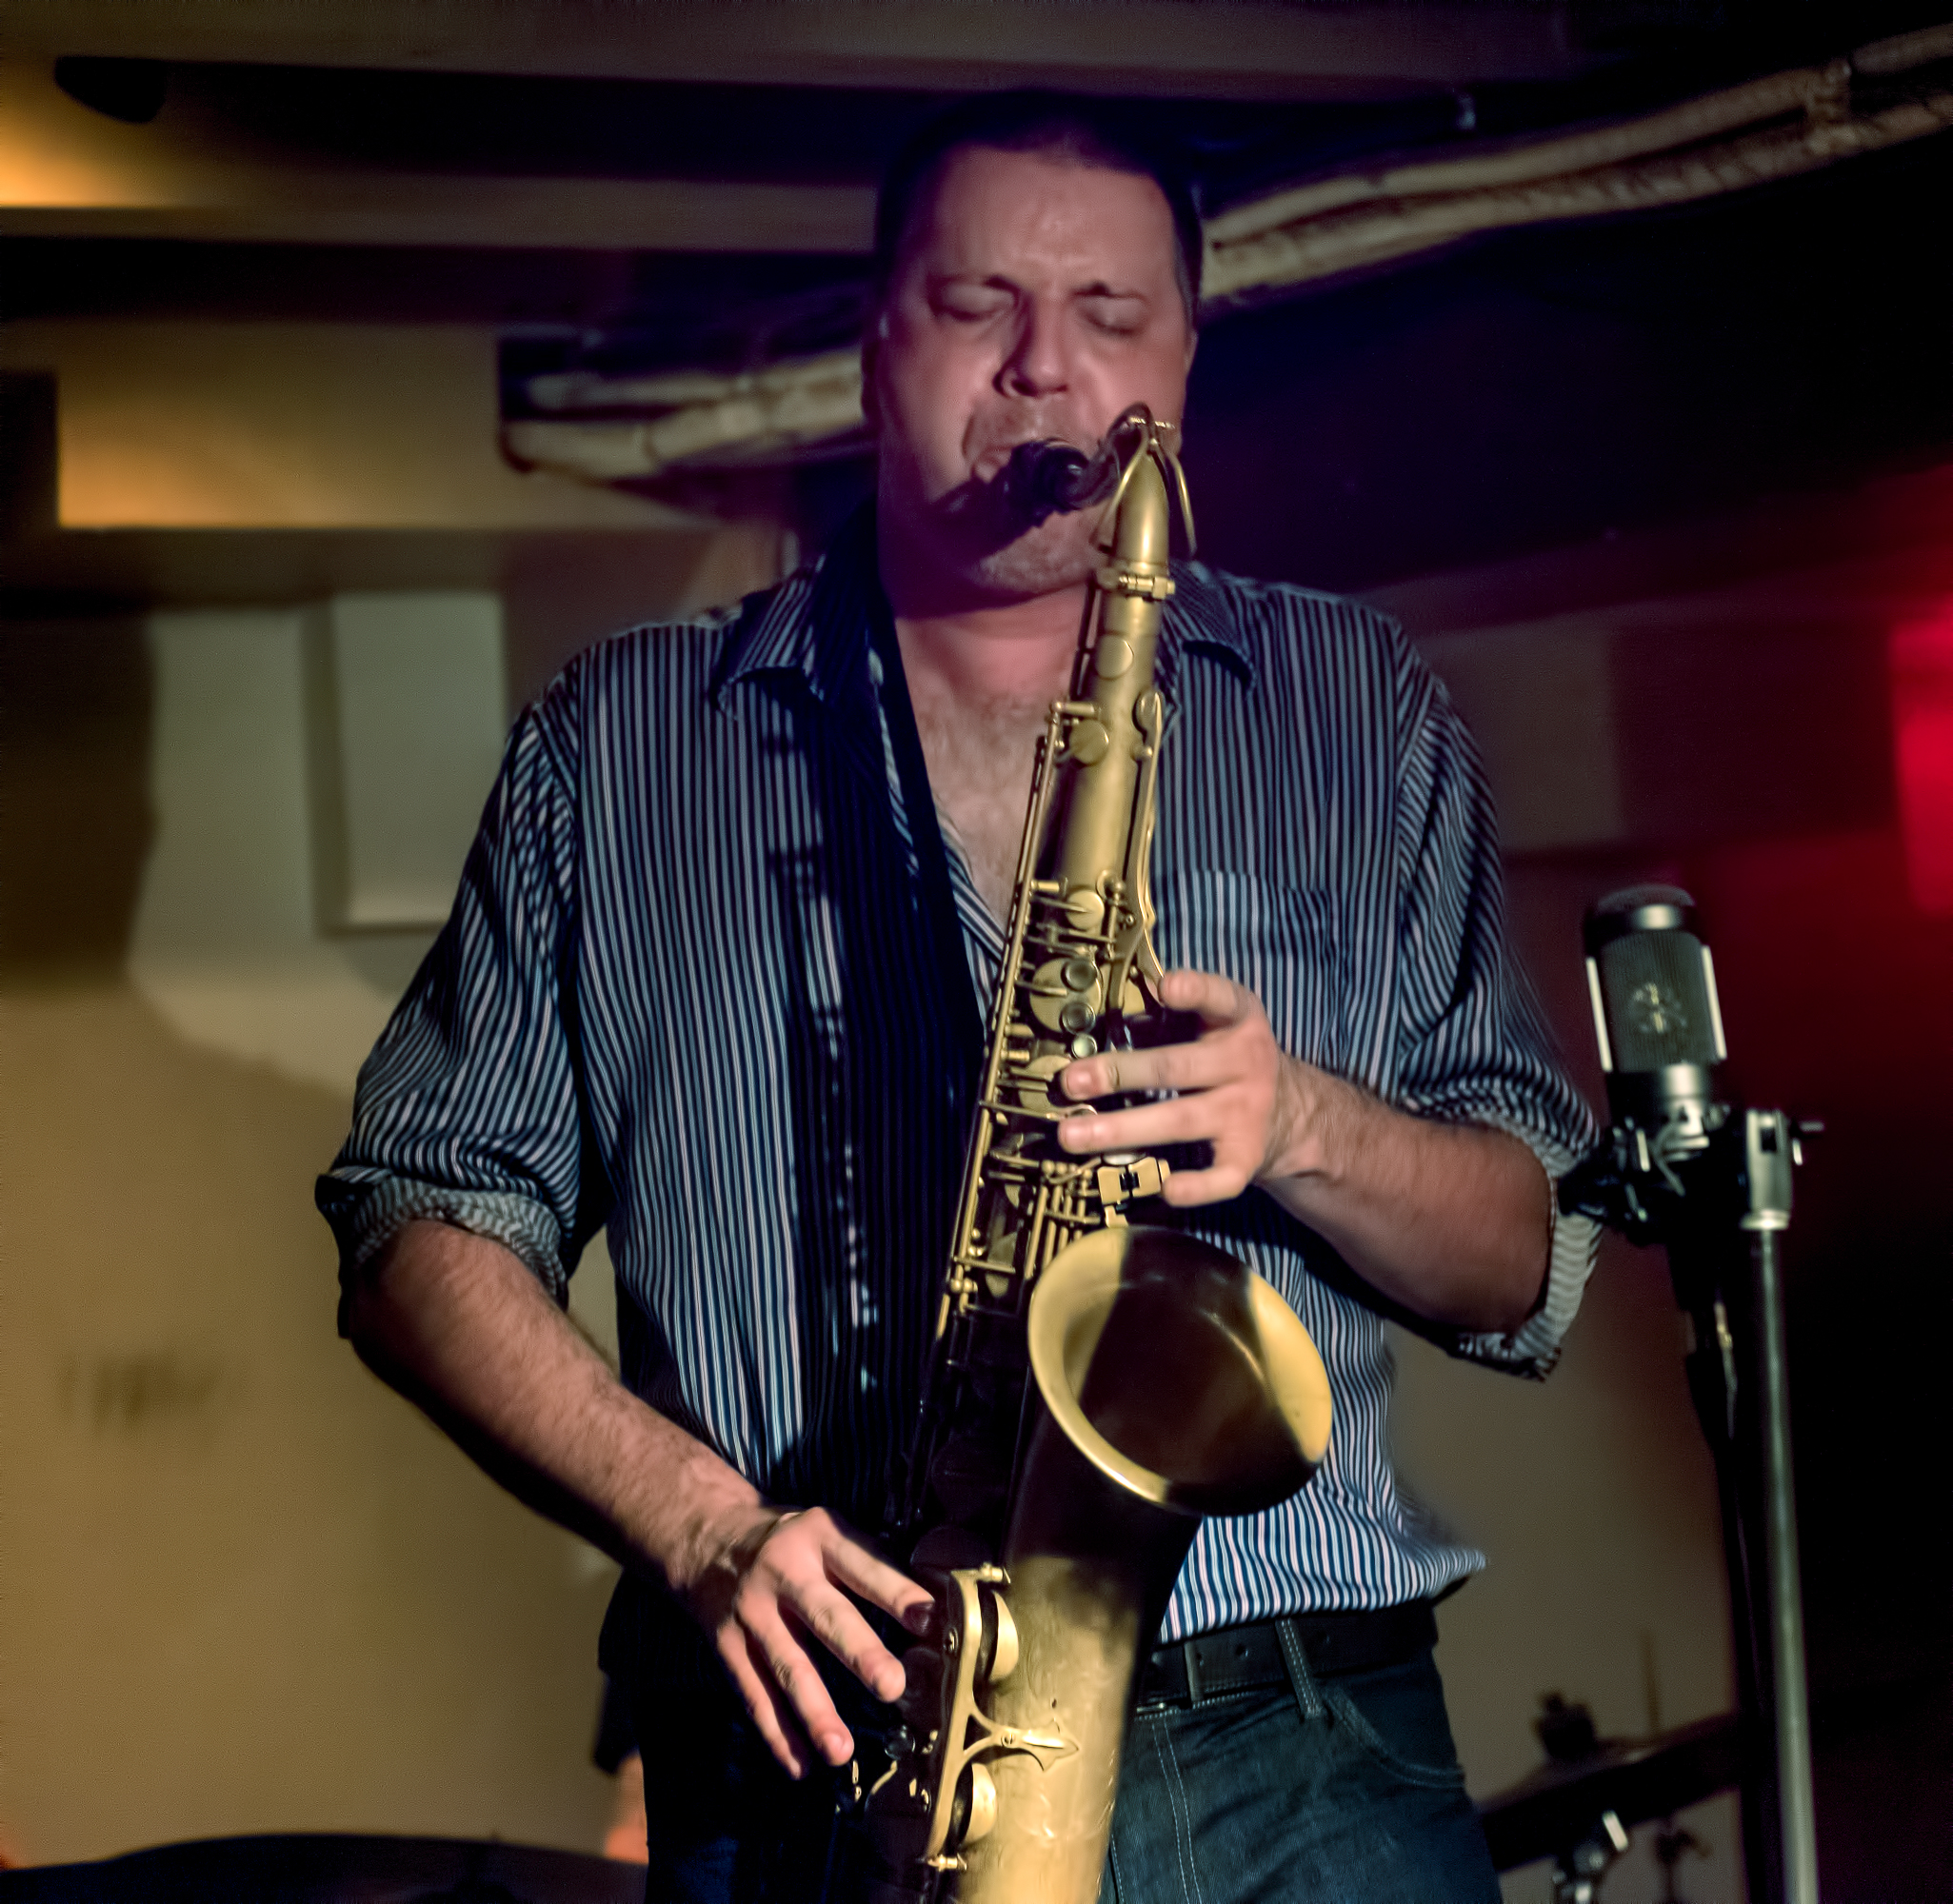 Al McLean with Quartet pays homage to Coltrane Plays the Blues at The Montreal International Jazz Festival 2018